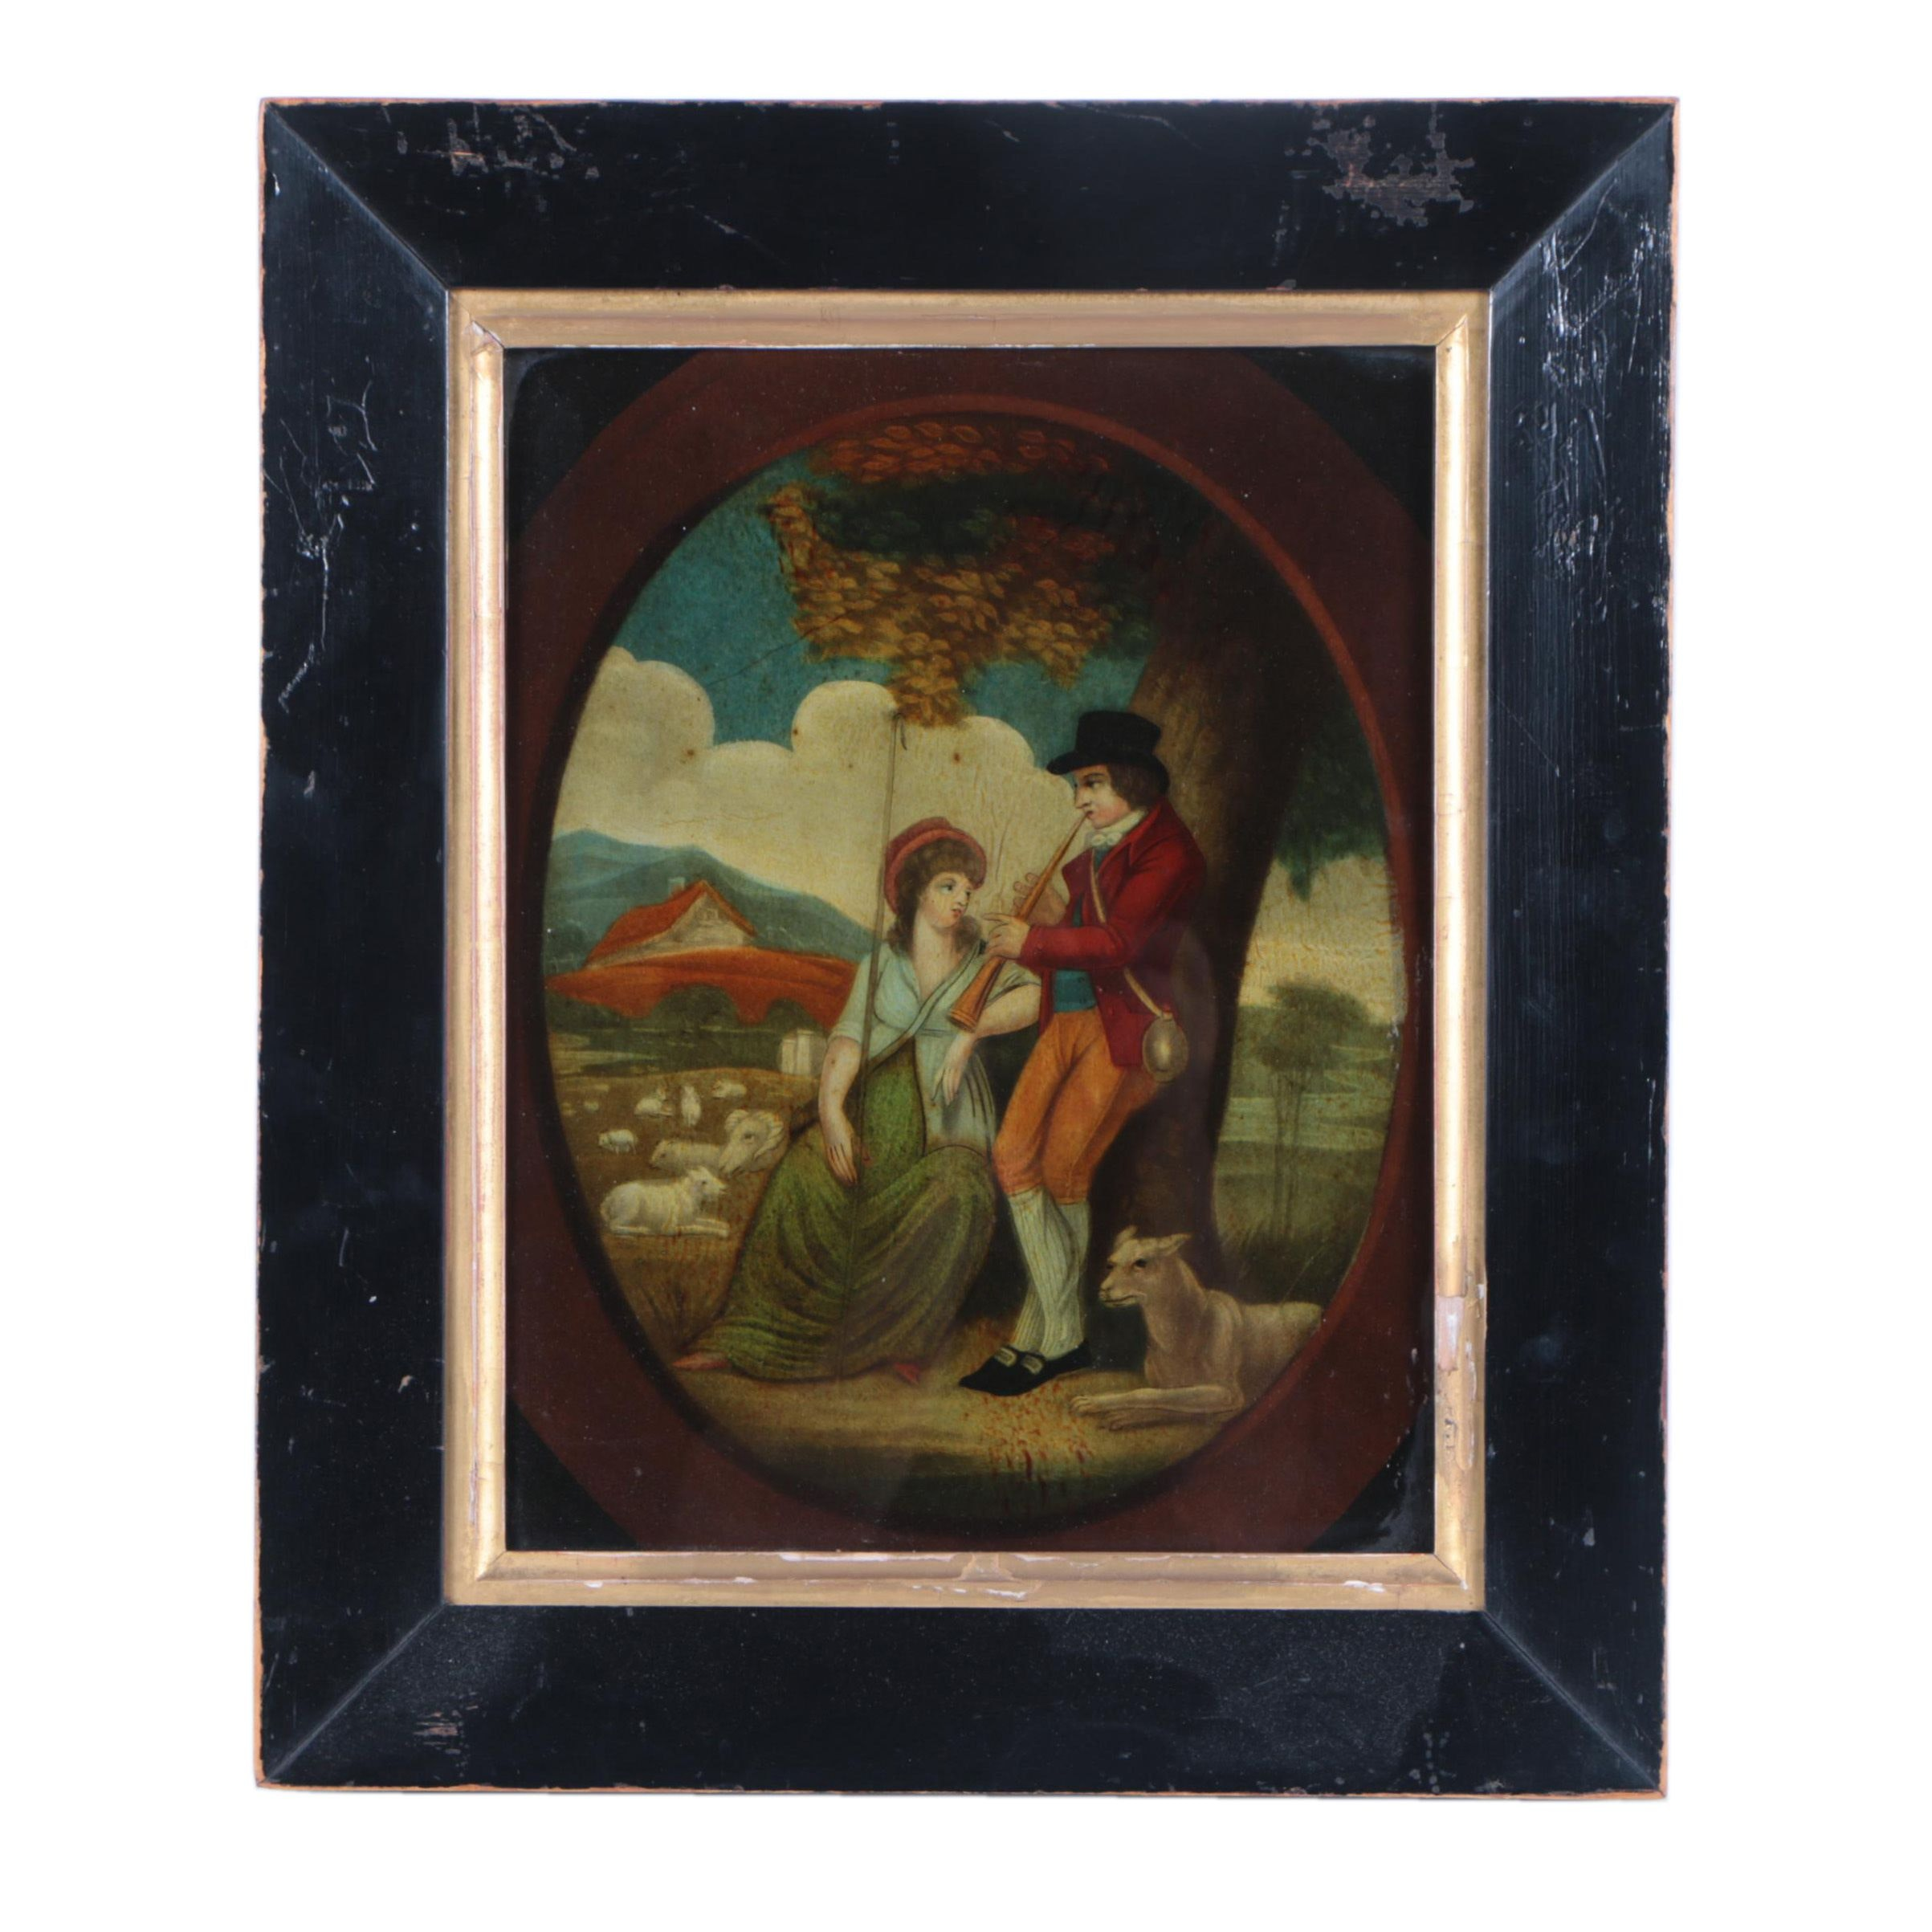 Antique Reverse Glass Hand-Colored Mezzotint Transfer